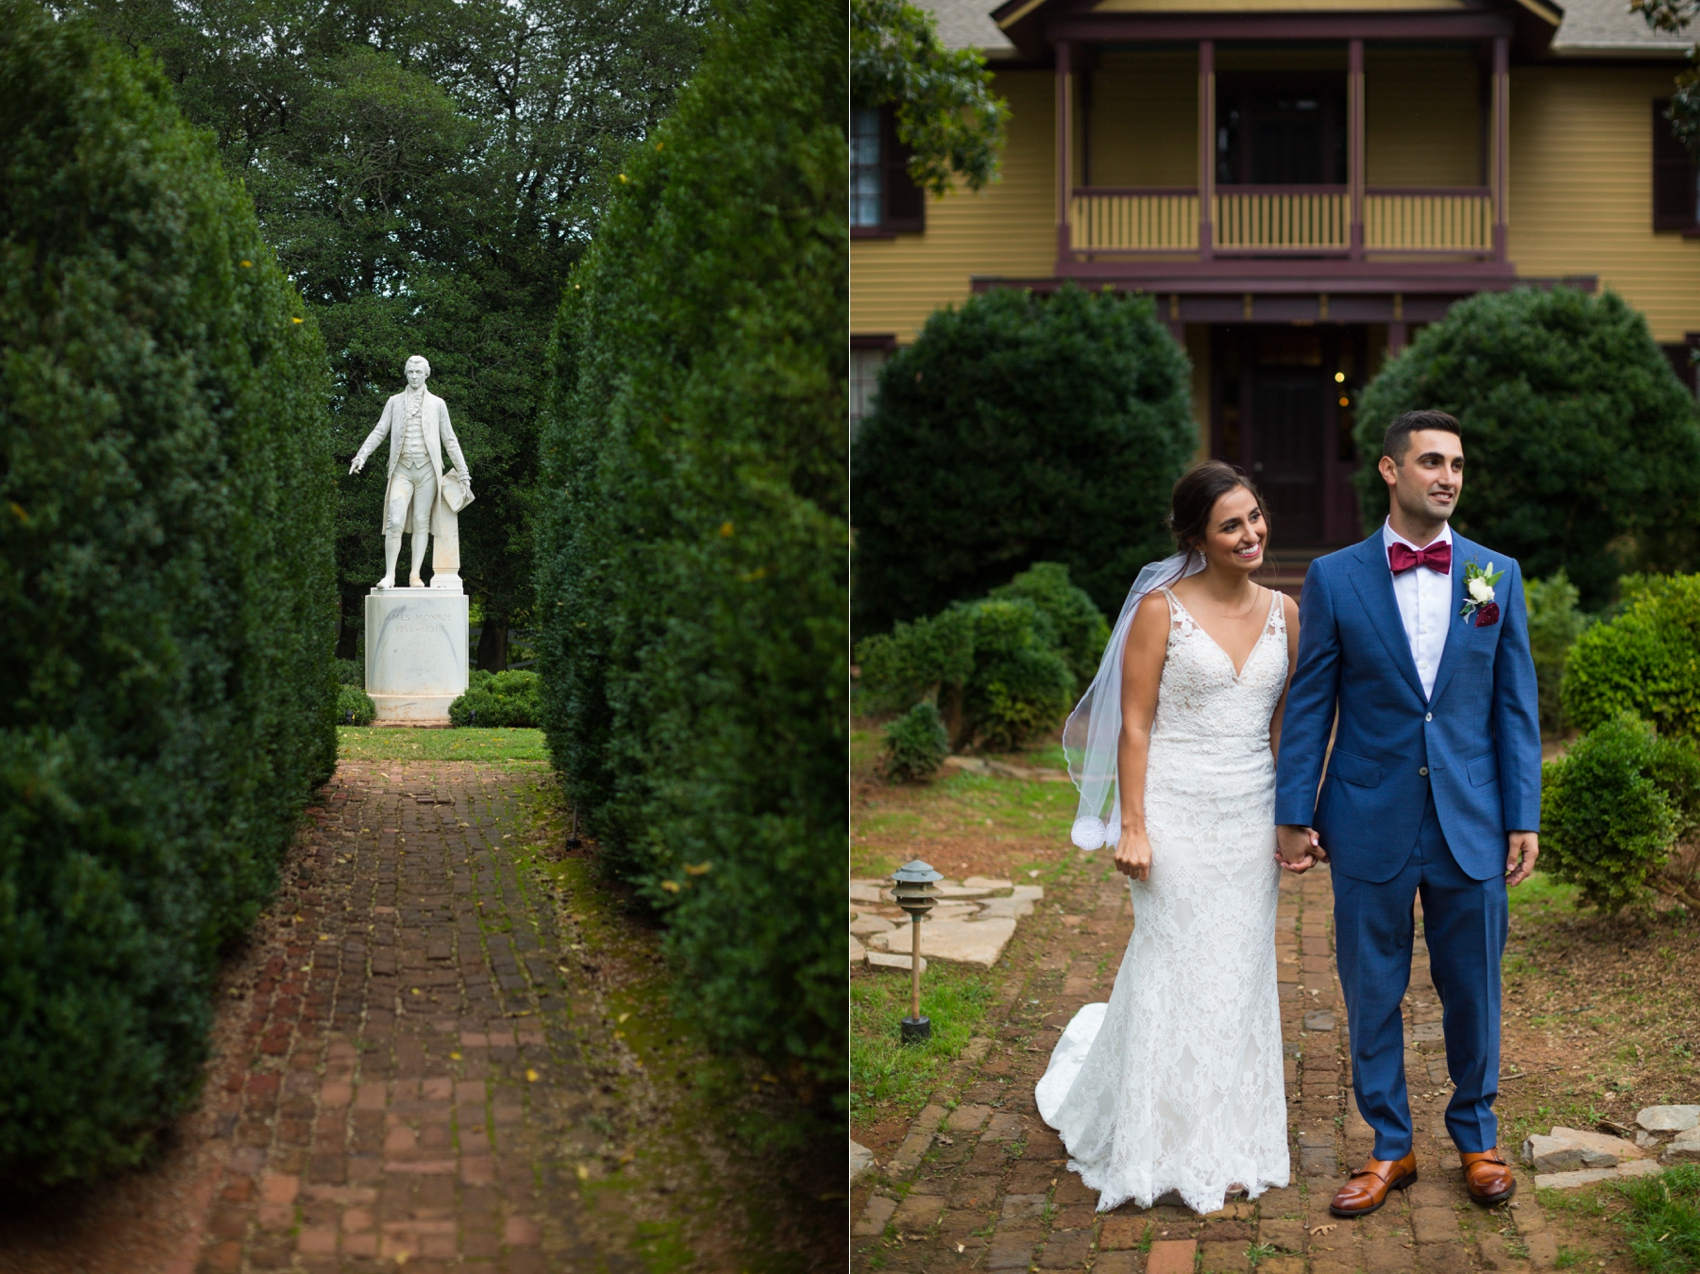 Ashlawn-Highland-Virginia-Wedding-2018-0060.jpg